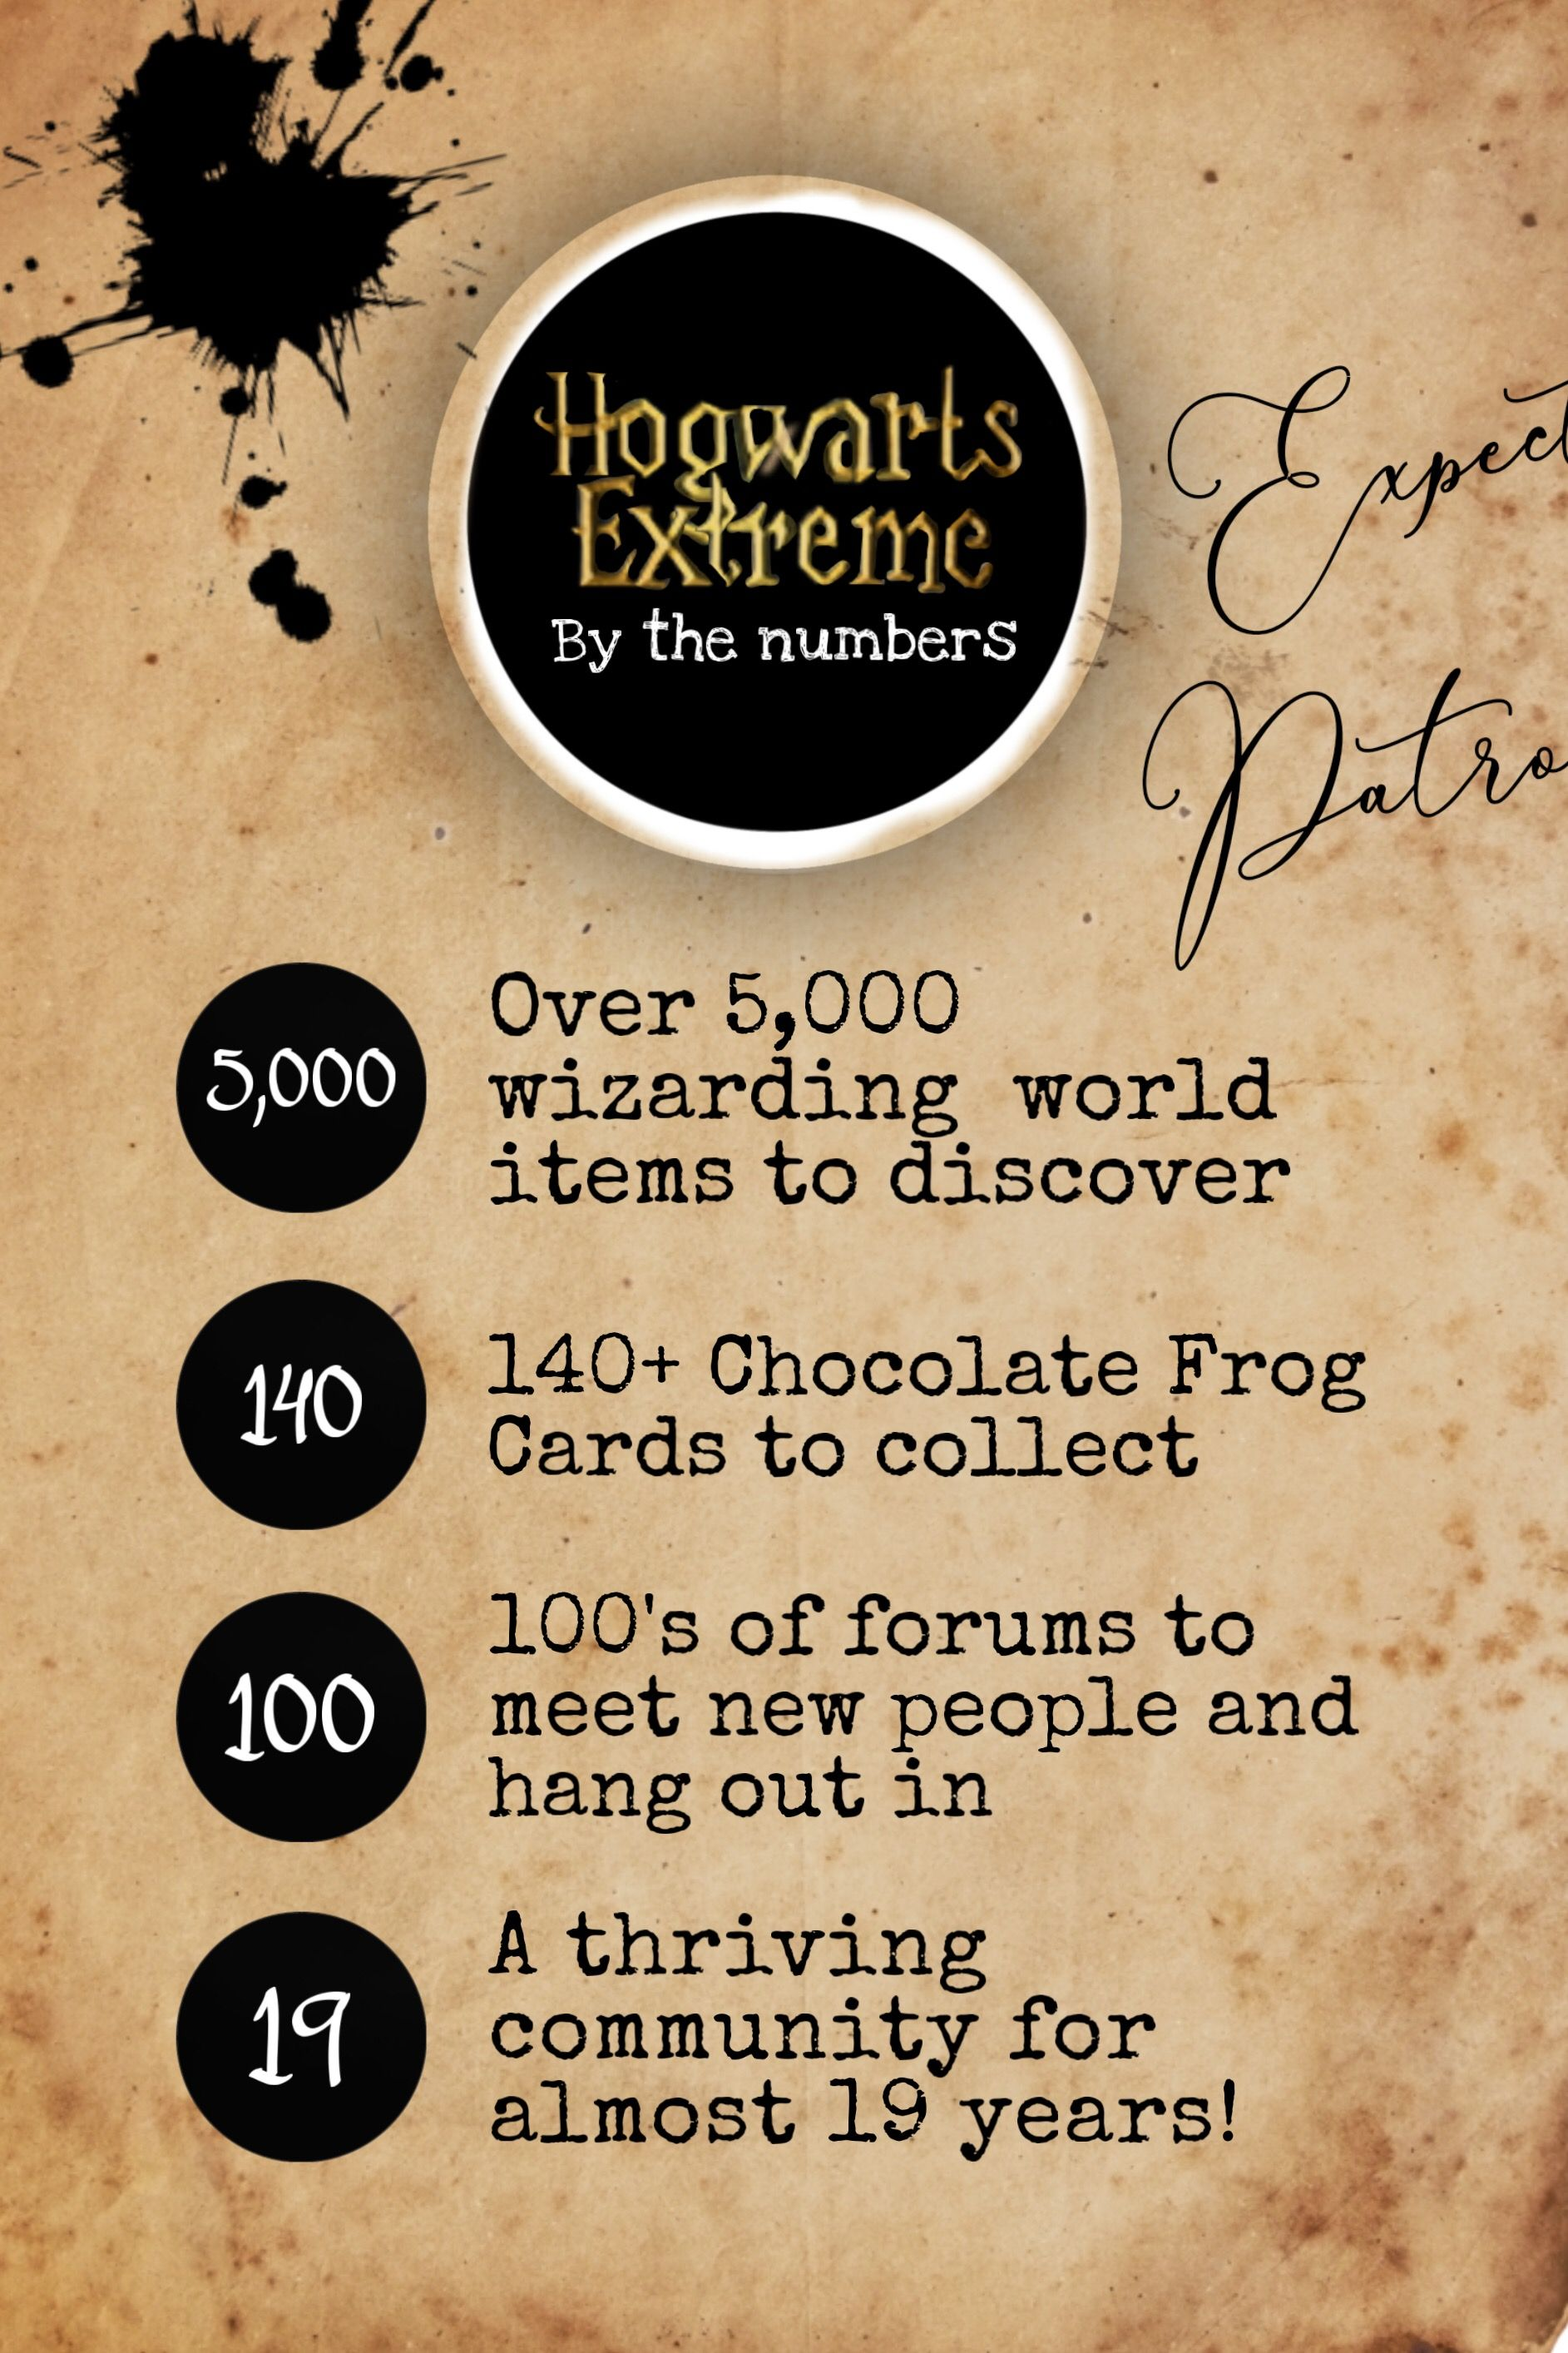 Hogwarts Extreme Hexrpg By The Numbers Hex Harry Potter Wizarding World Chocolate Frogs Forums Commun Hogwarts Extreme Hogwarts Harry Potter Experience